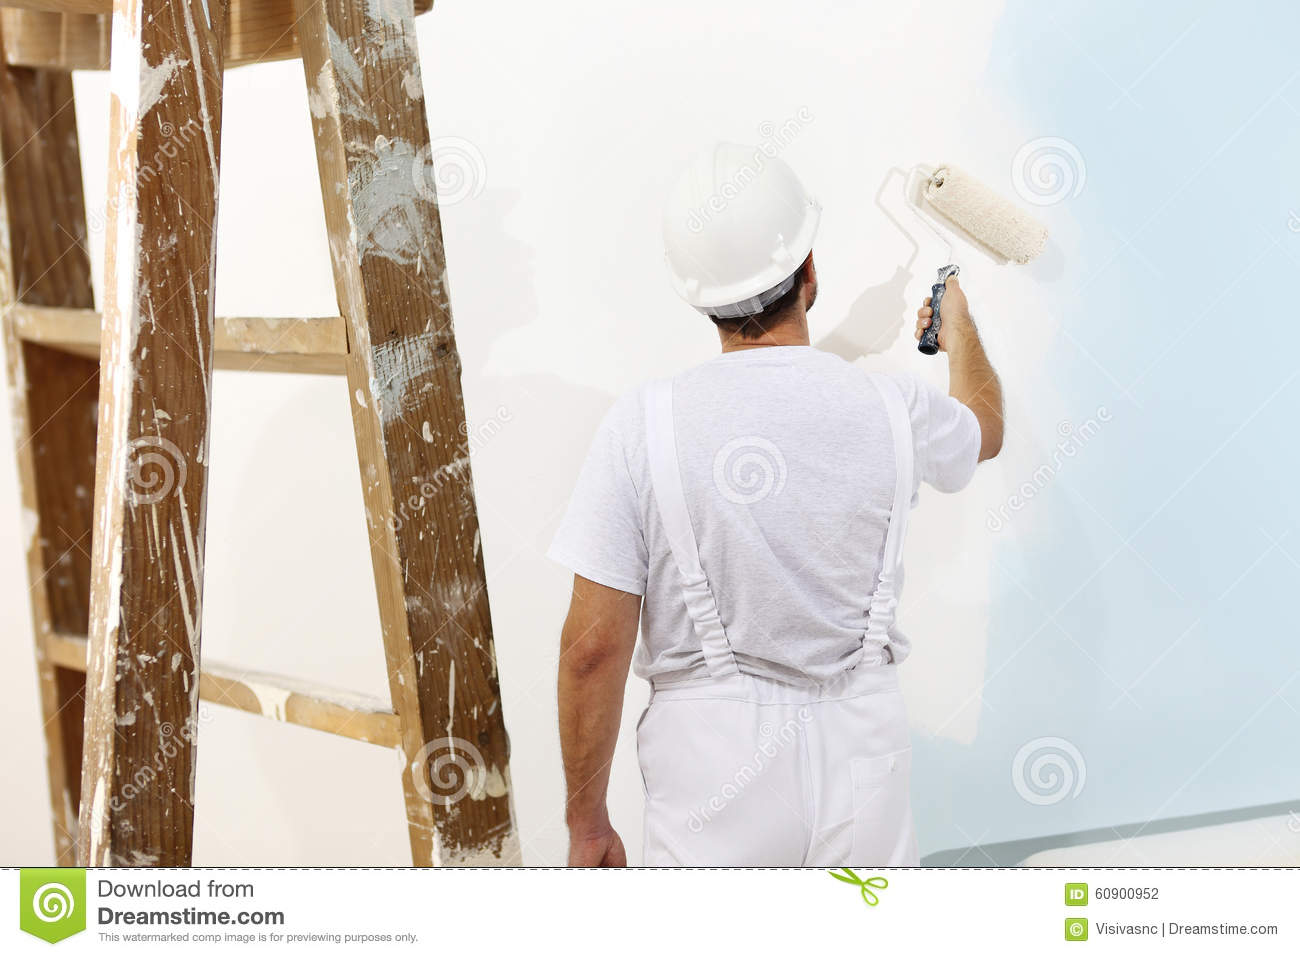 Painter And Decorator Prices >> Painter Man At Work With A Paint Roller, Wall Painting Stock Photo - Image of ladder ...